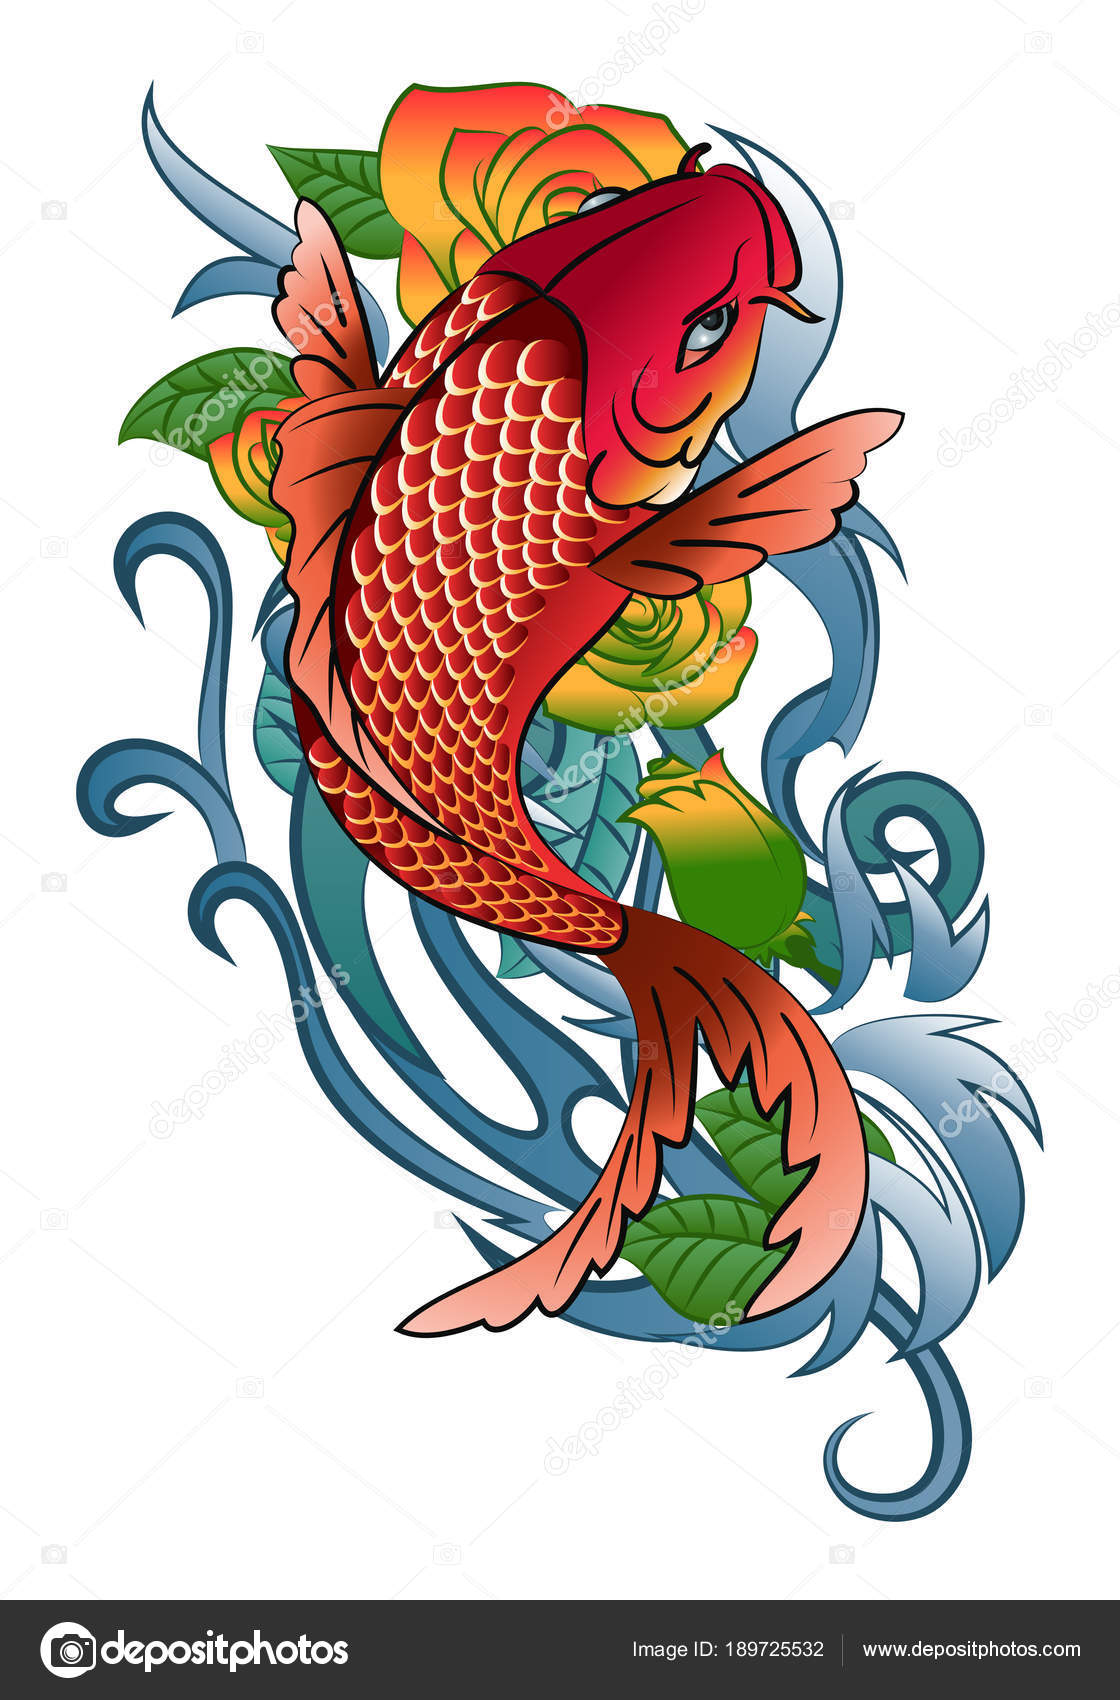 koi fish jump tattoo — Stock Photo © onionime #189725532